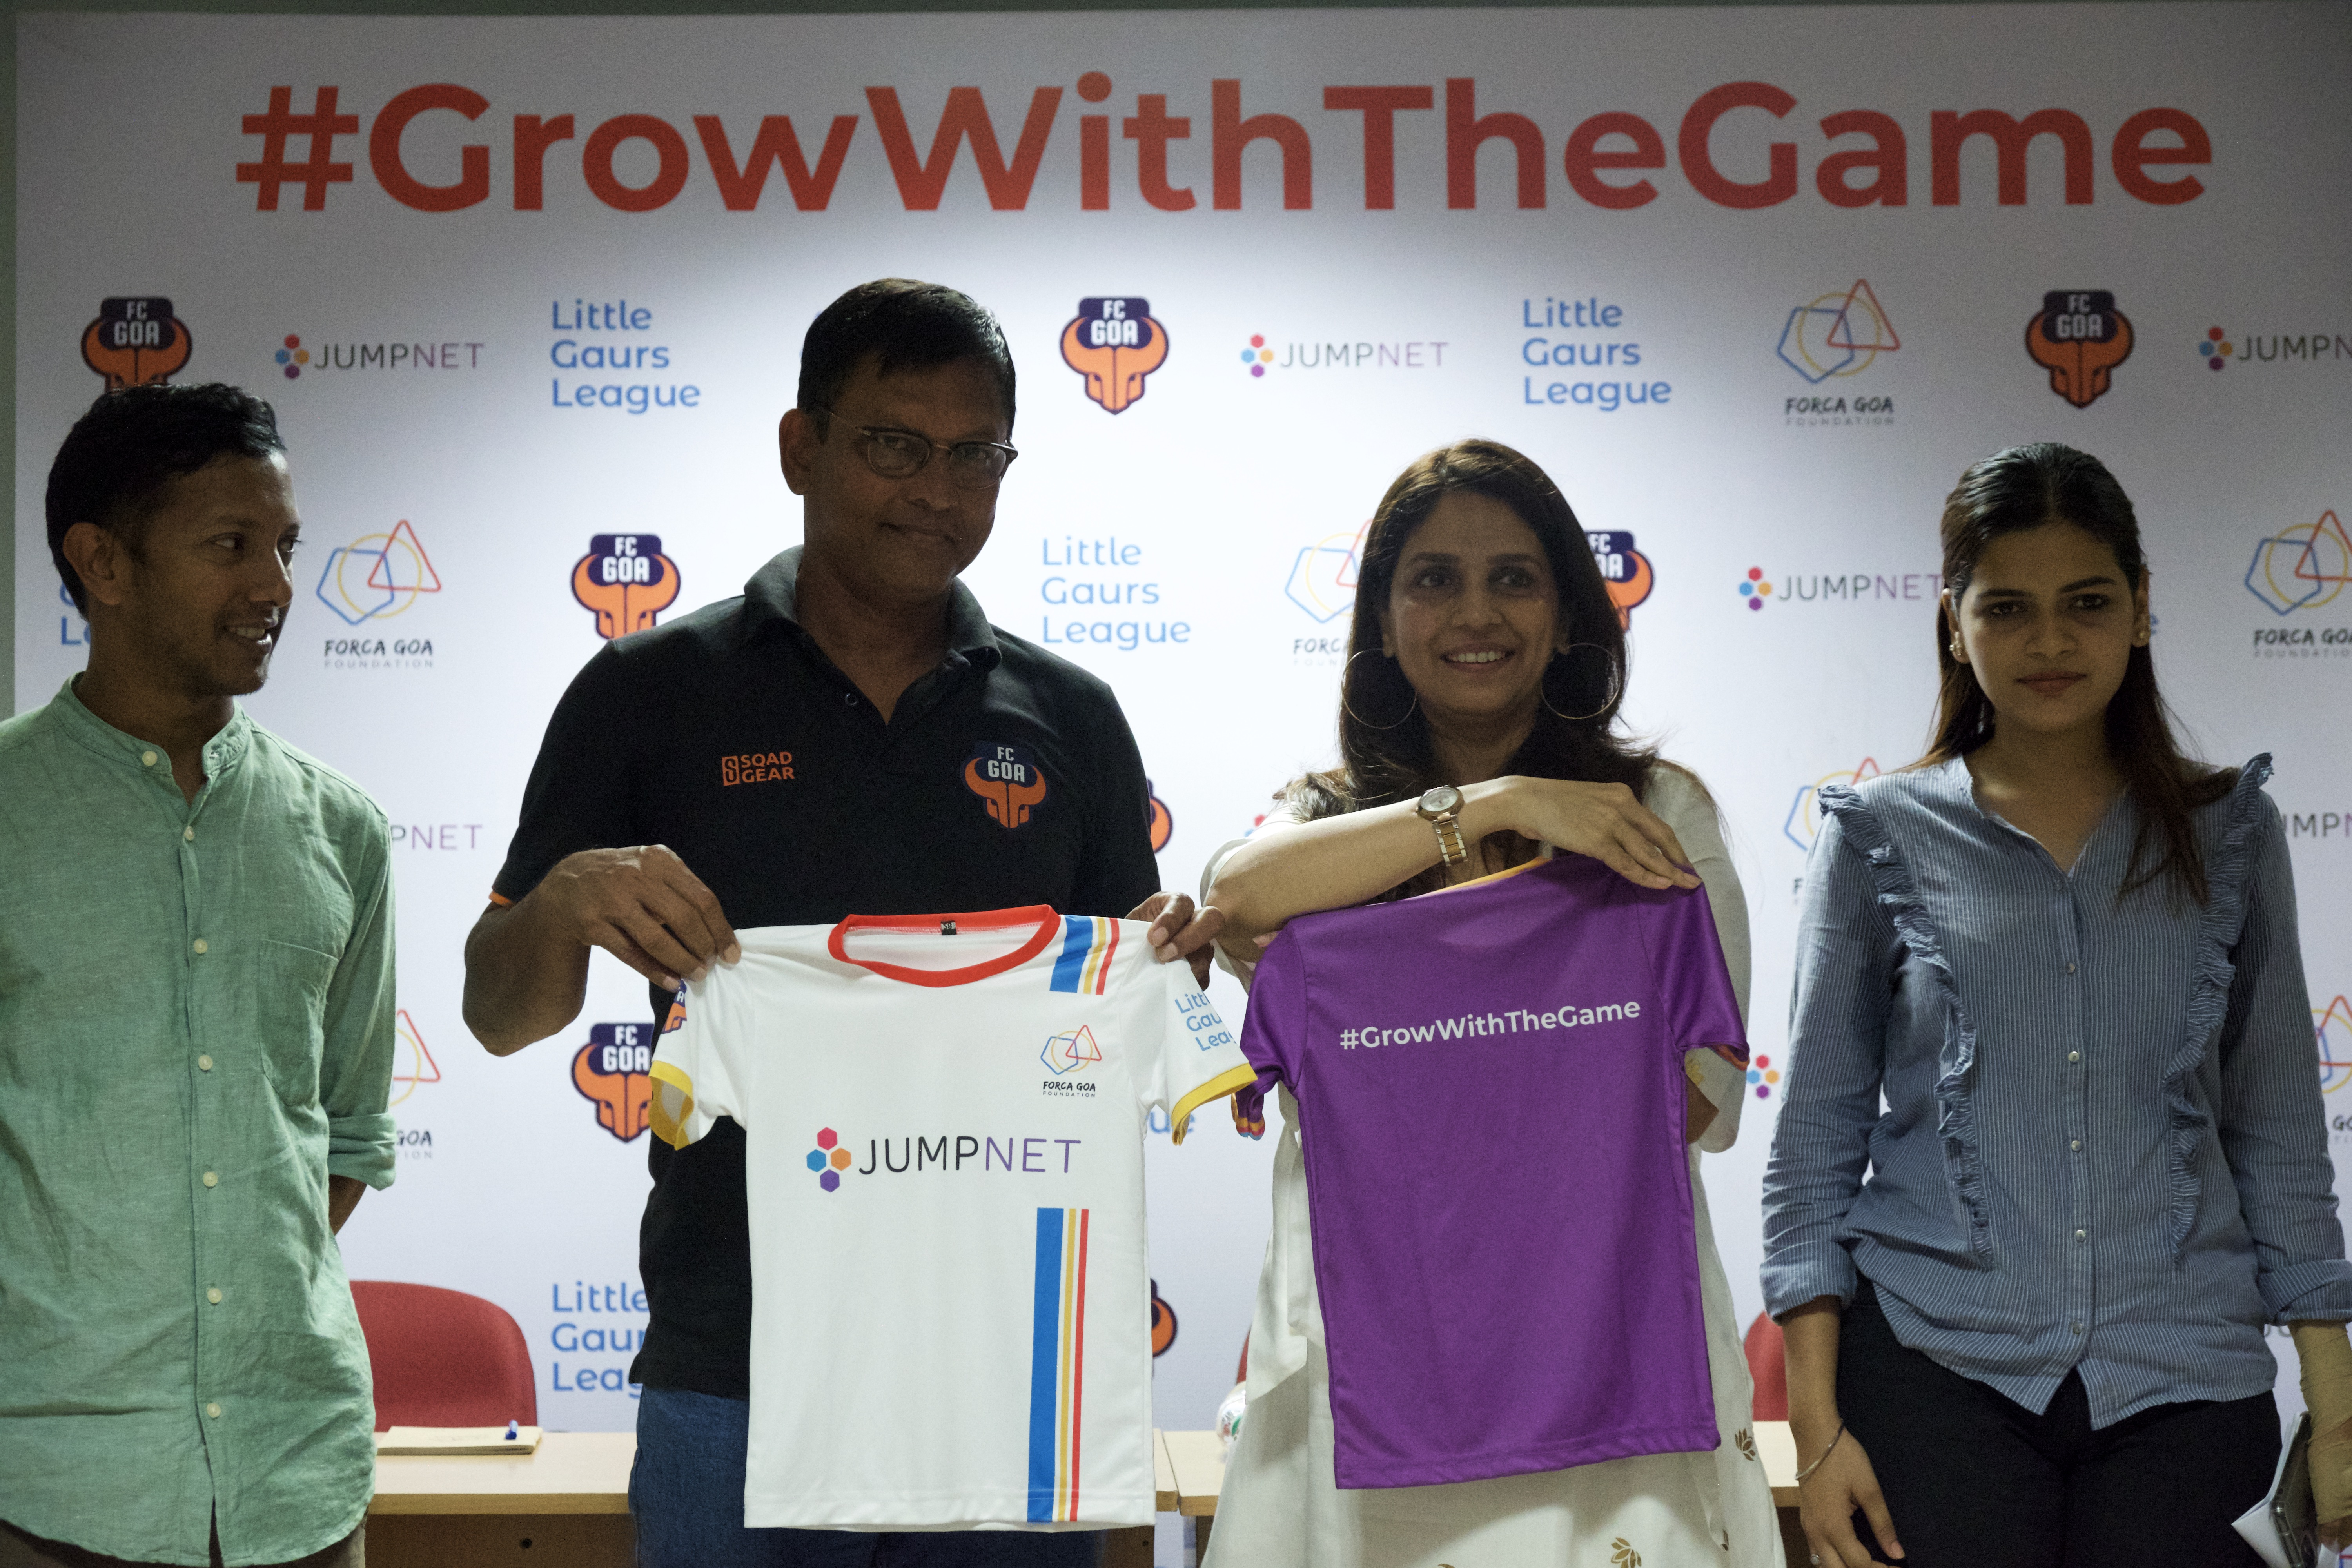 After the success of the inaugural edition of the Little Gaurs League, the Forca Goa Foundation is all set to launch the second edition of Goa's biggest Baby League, the Little Gaurs League 19-20.